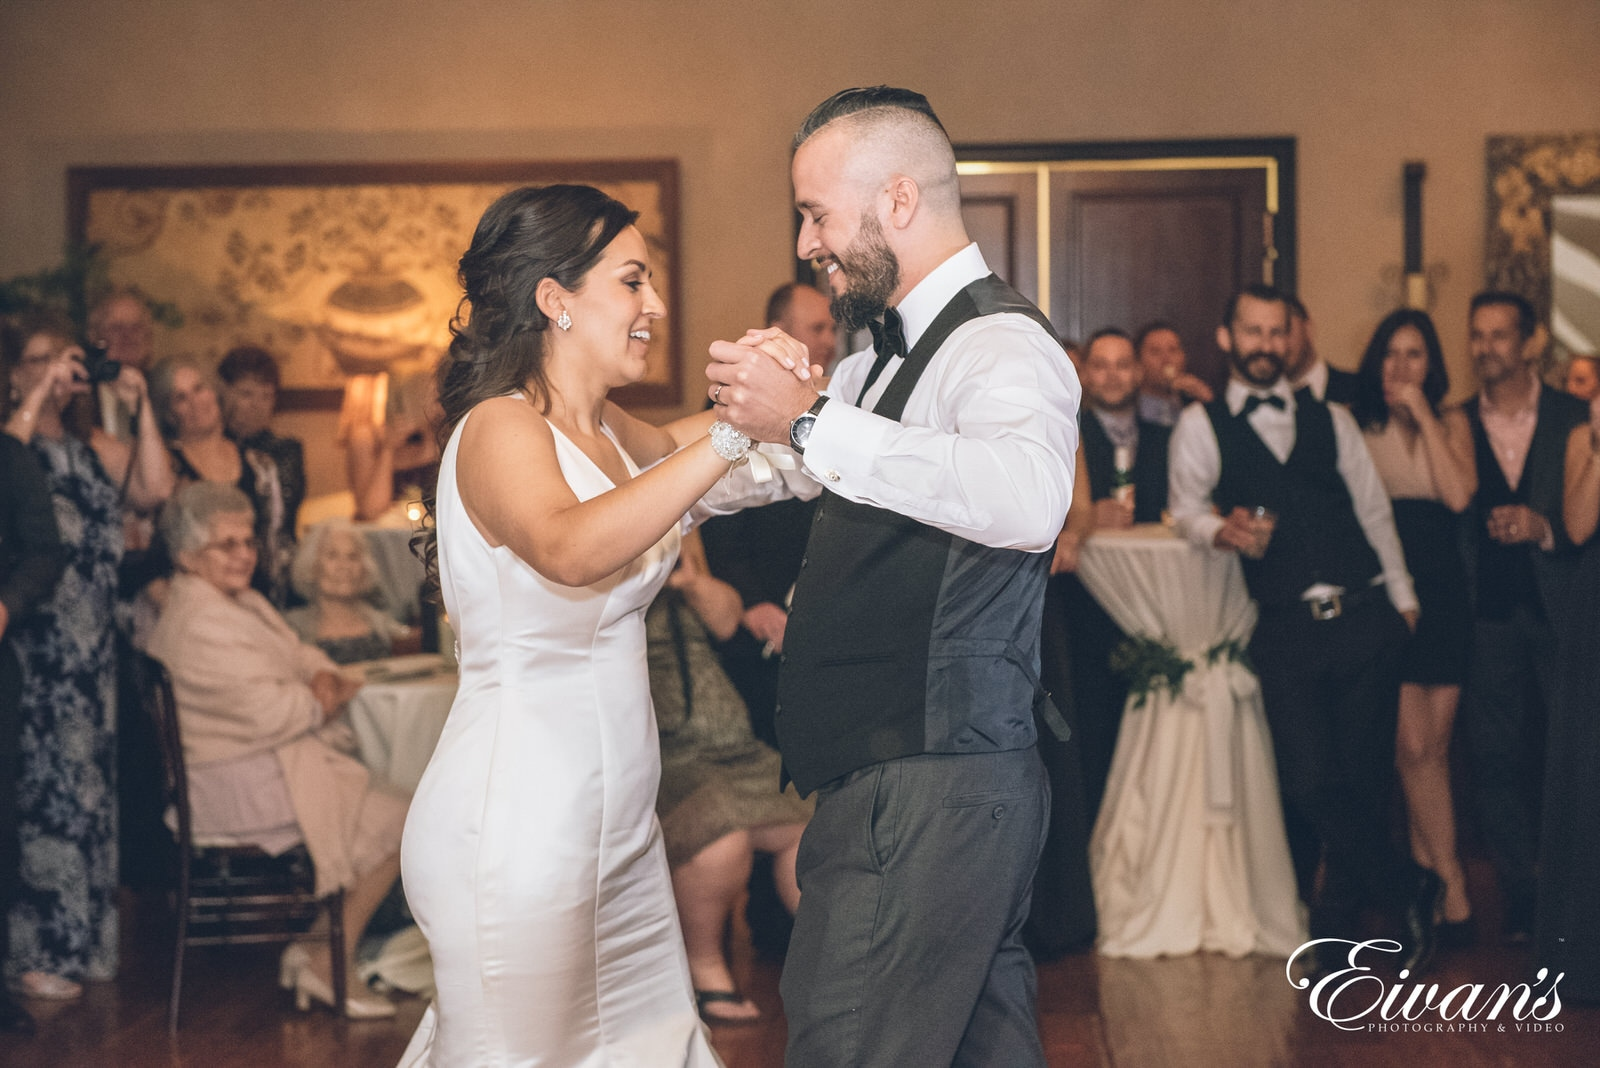 married man and woman dancing